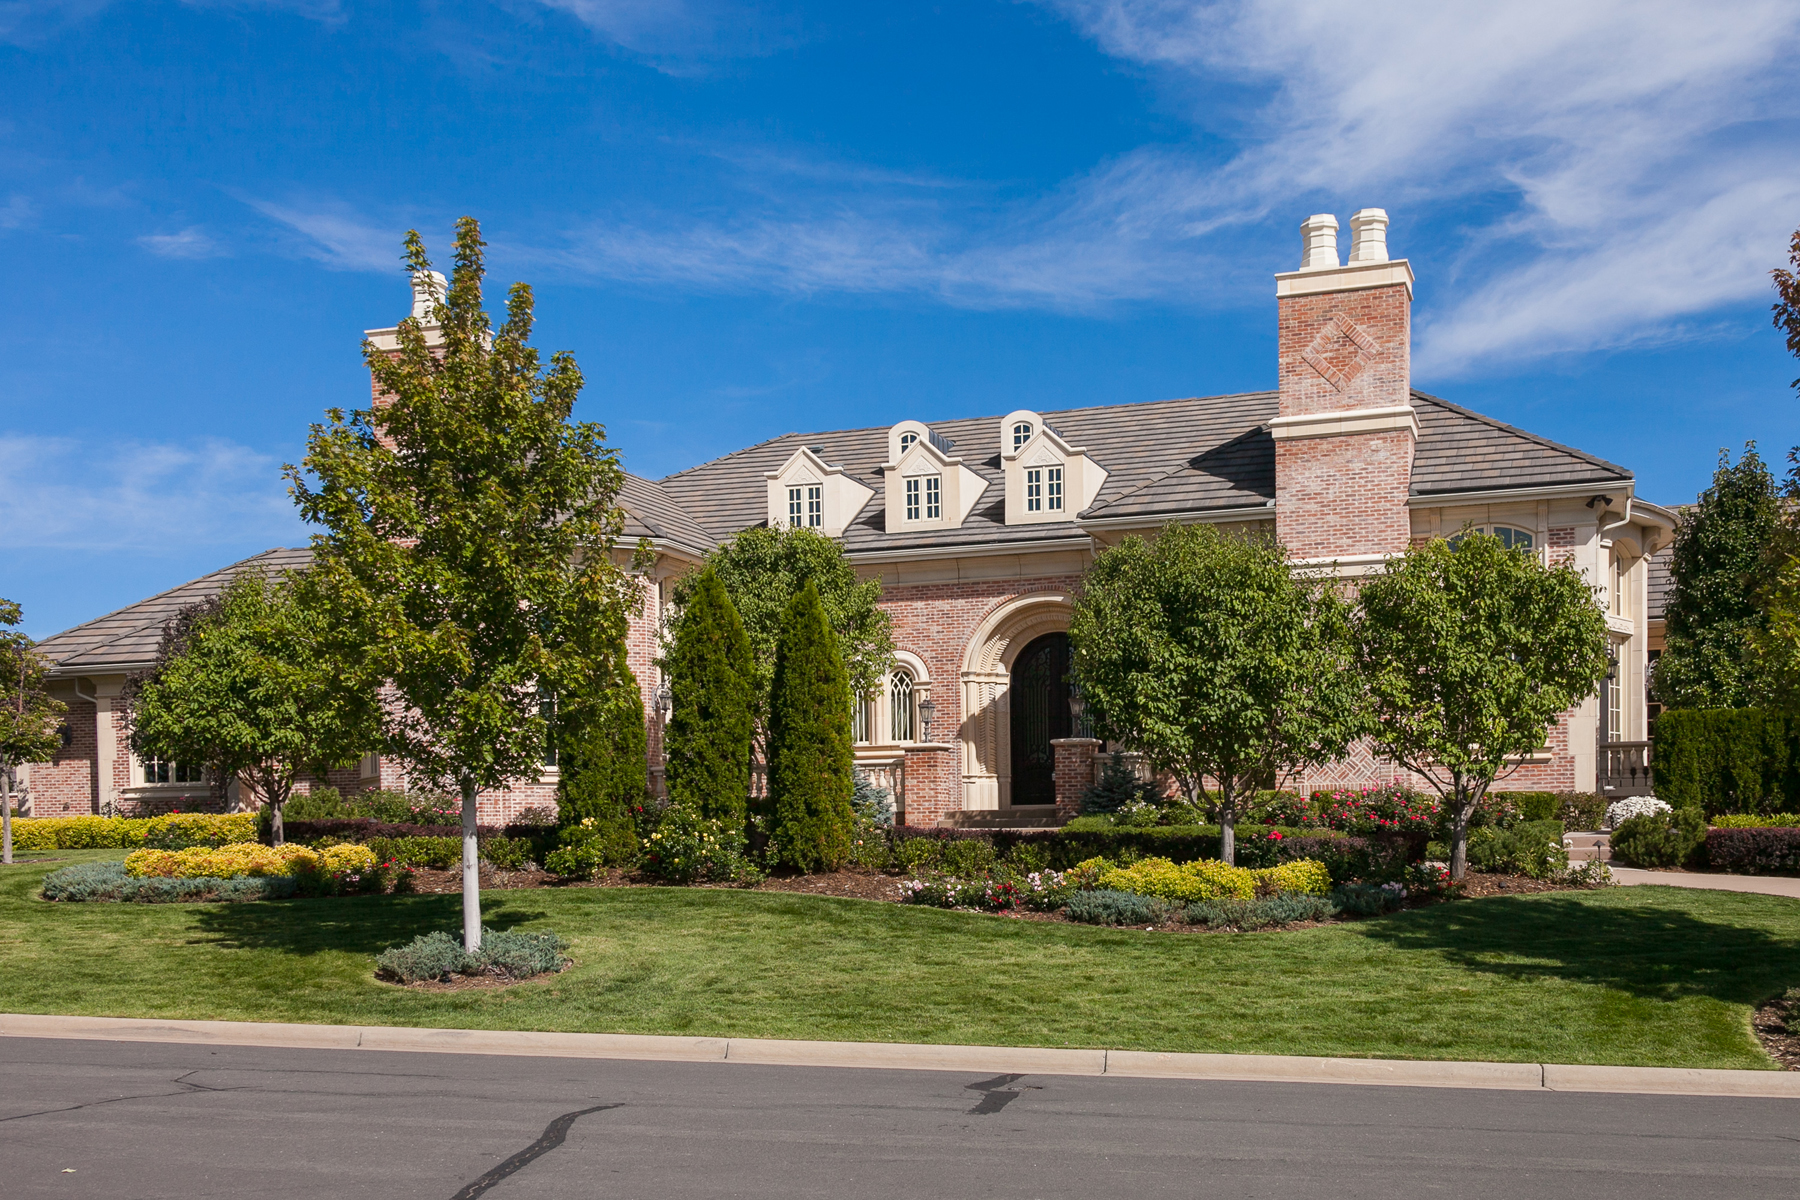 Single Family Home for Active at Stately and sophisticated brick ranch masterpiece 4060 E. Chestnut Court Greenwood Village, Colorado 80121 United States